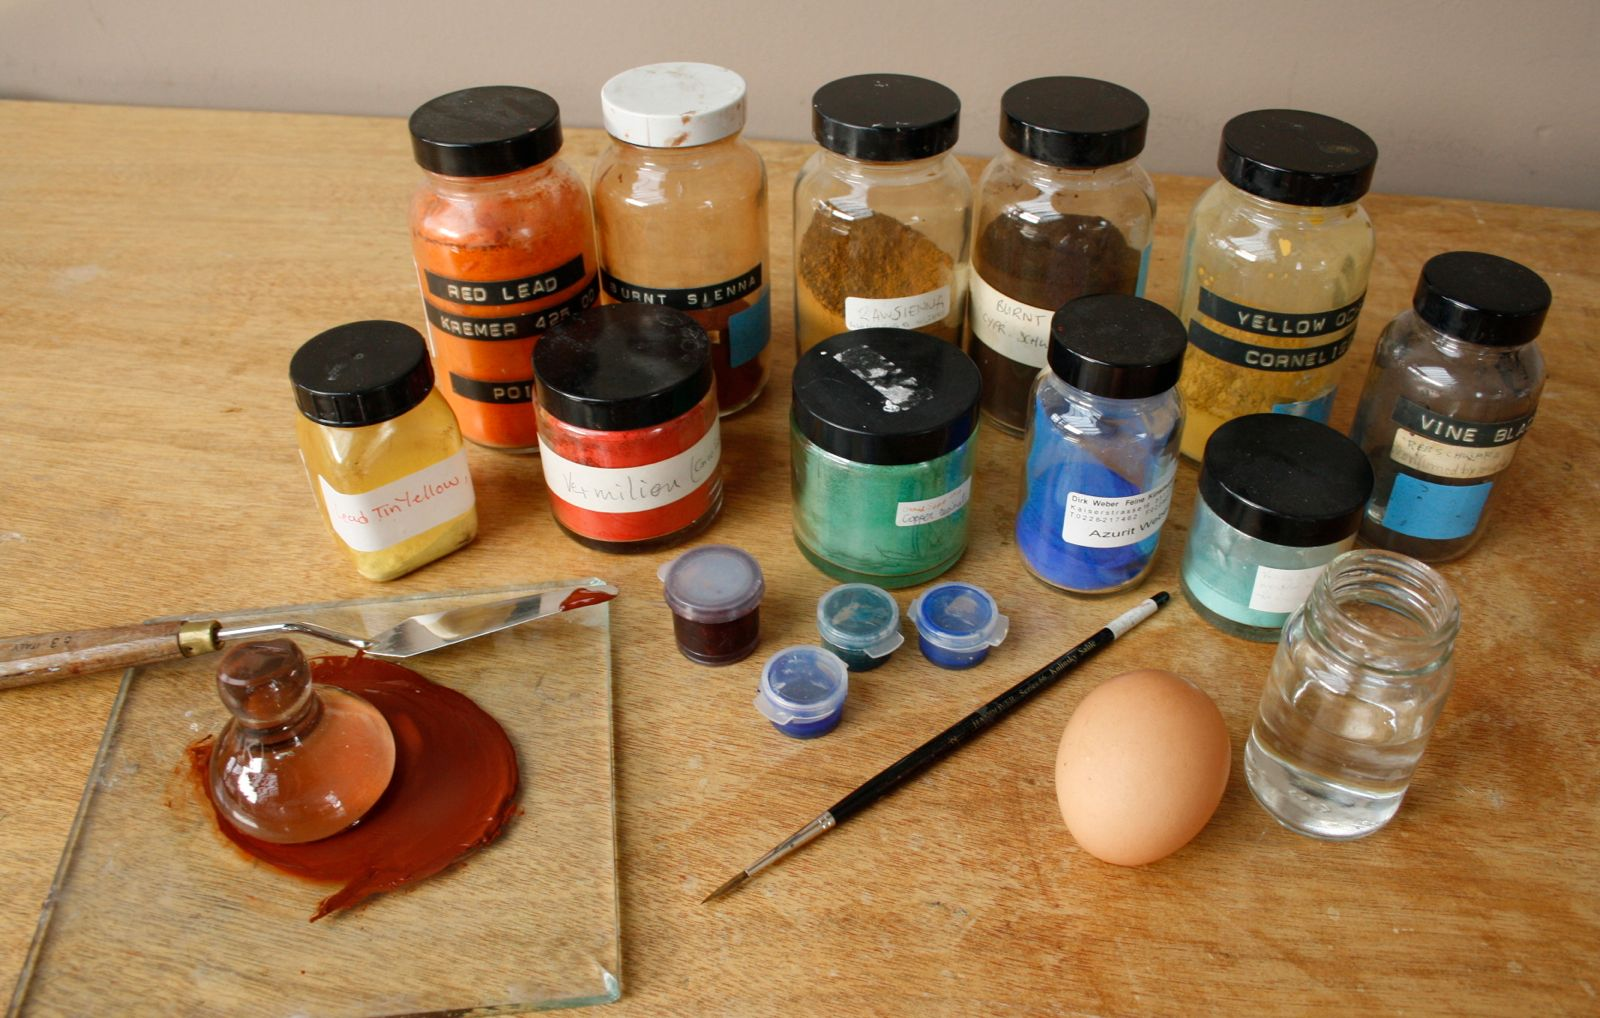 Materials used to make egg tempera paint